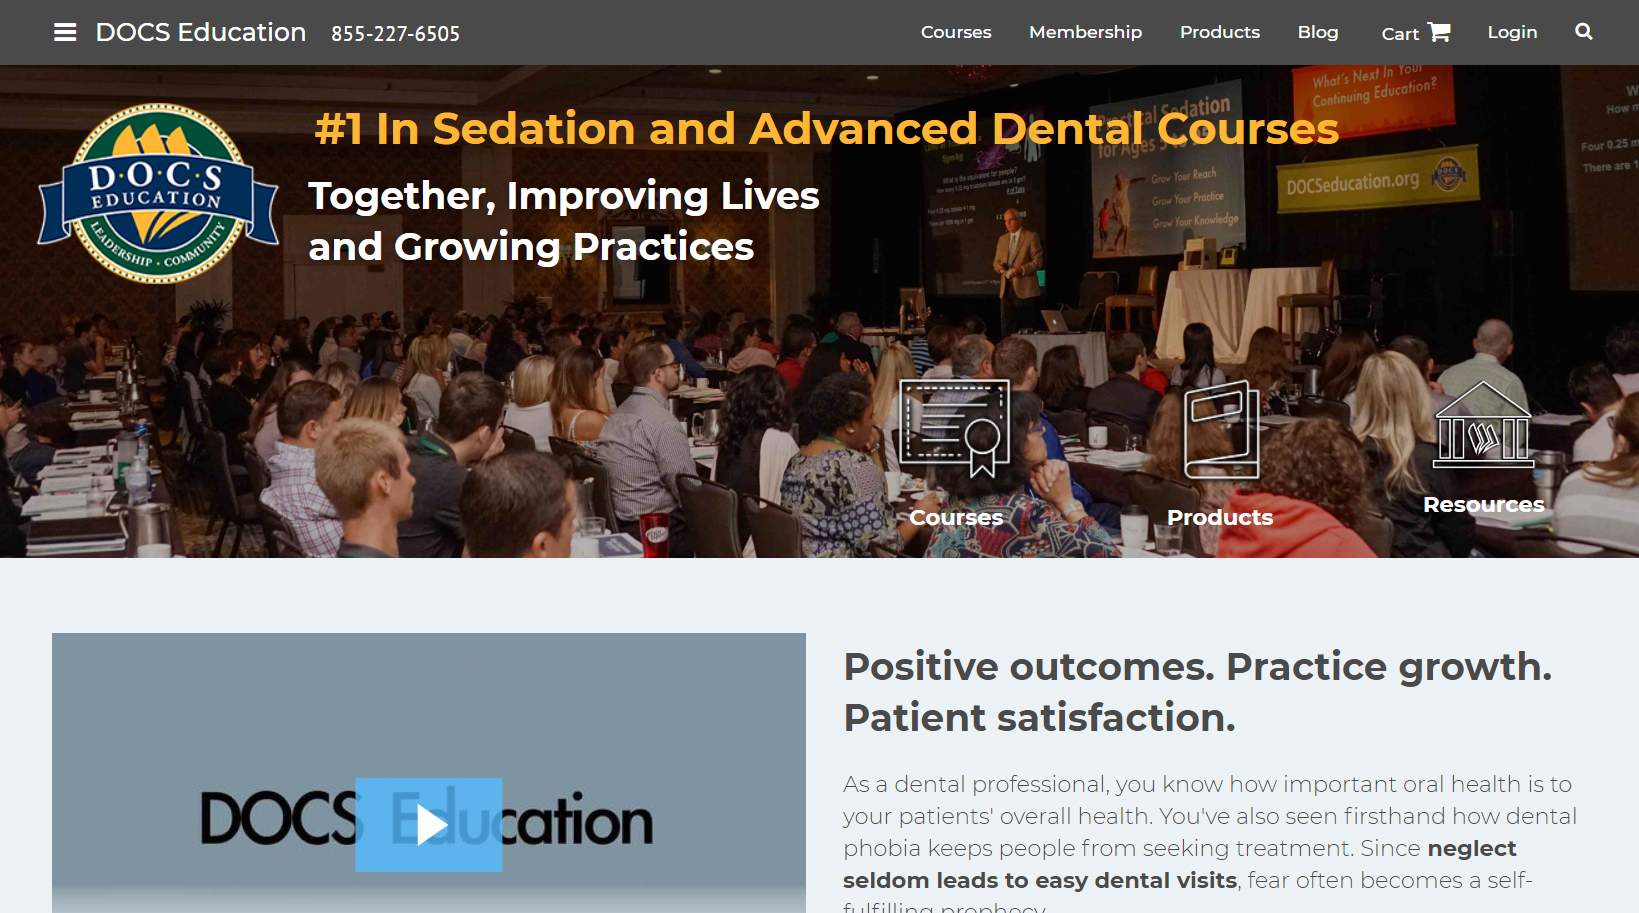 The redesigned DOCS Education homepage.